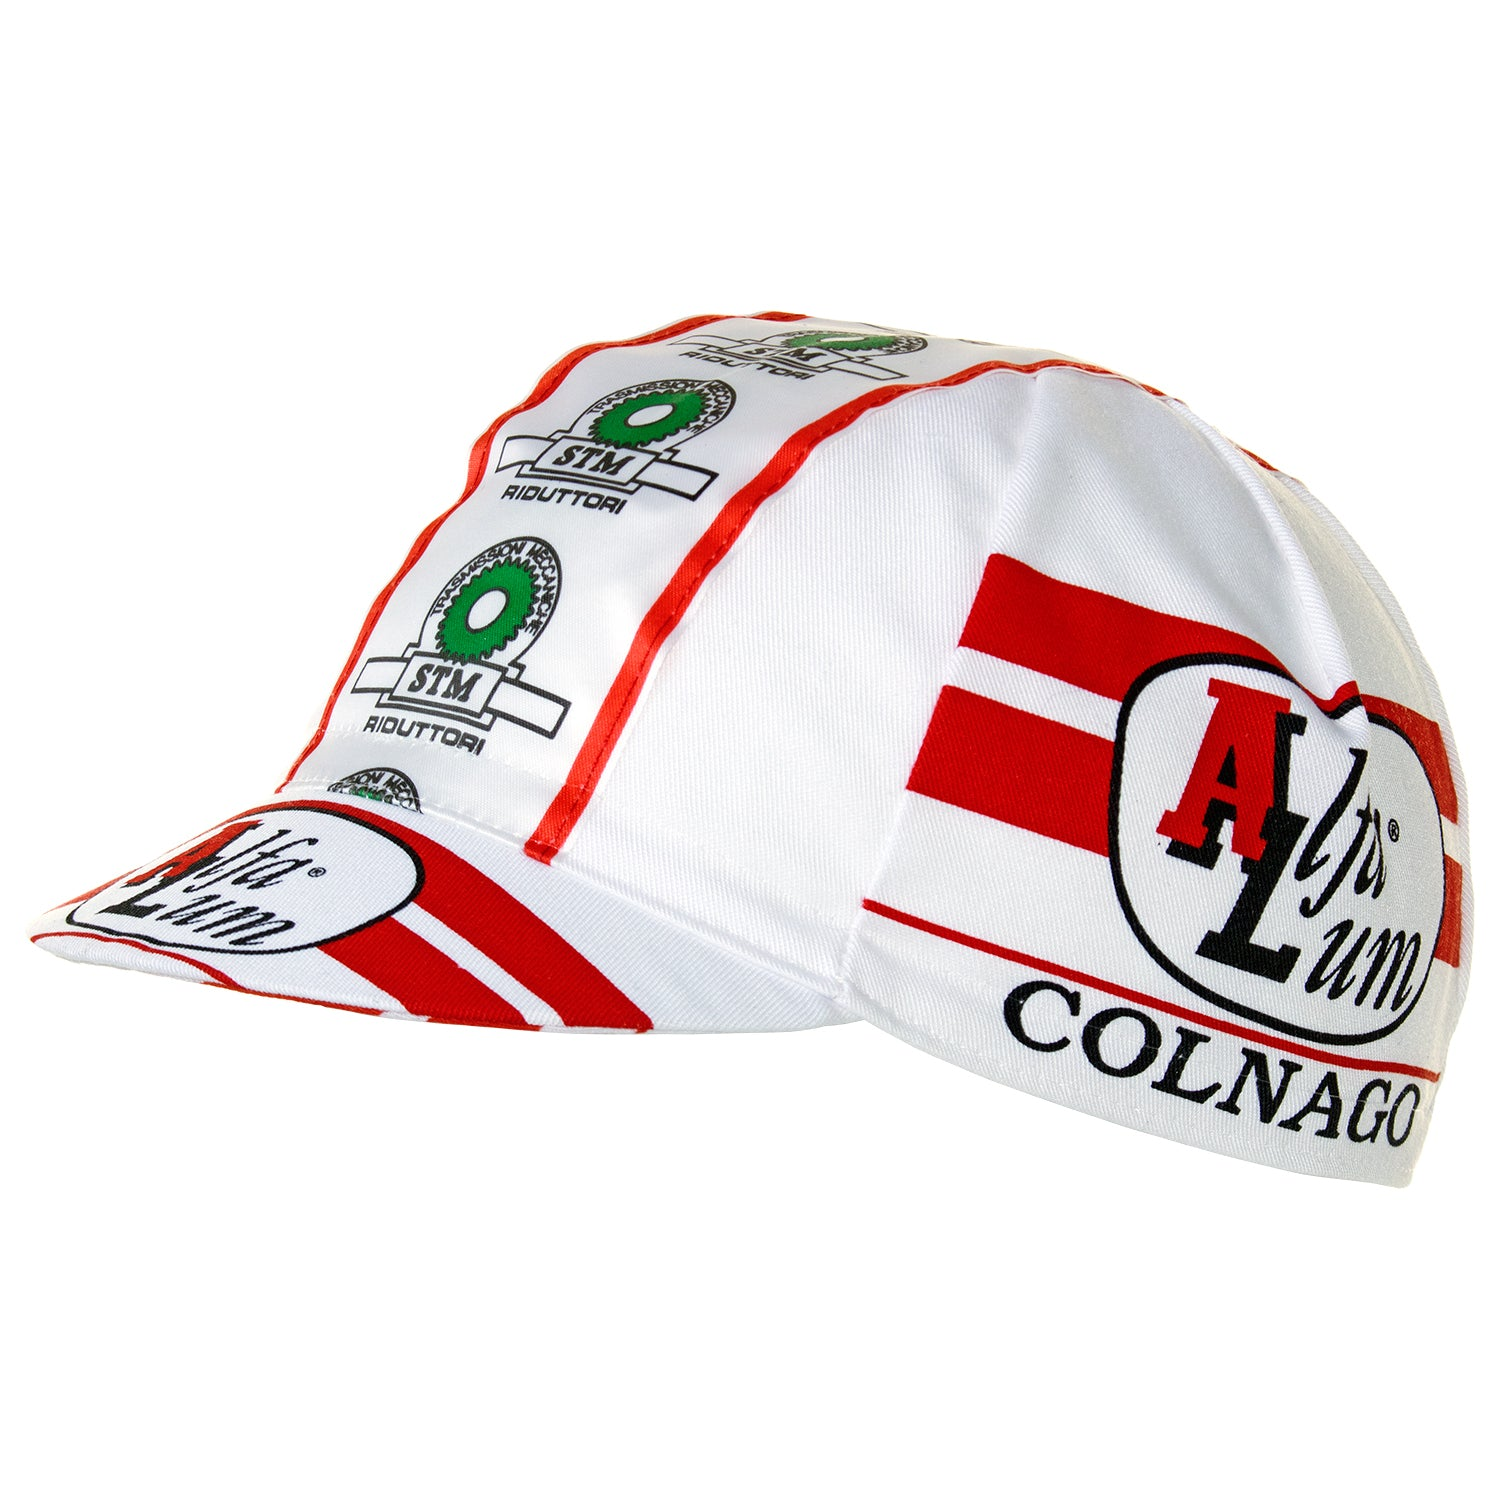 Alfa Lum/Colnago/STM Riduttori Retro Cotton Cycling Cap | Headwear